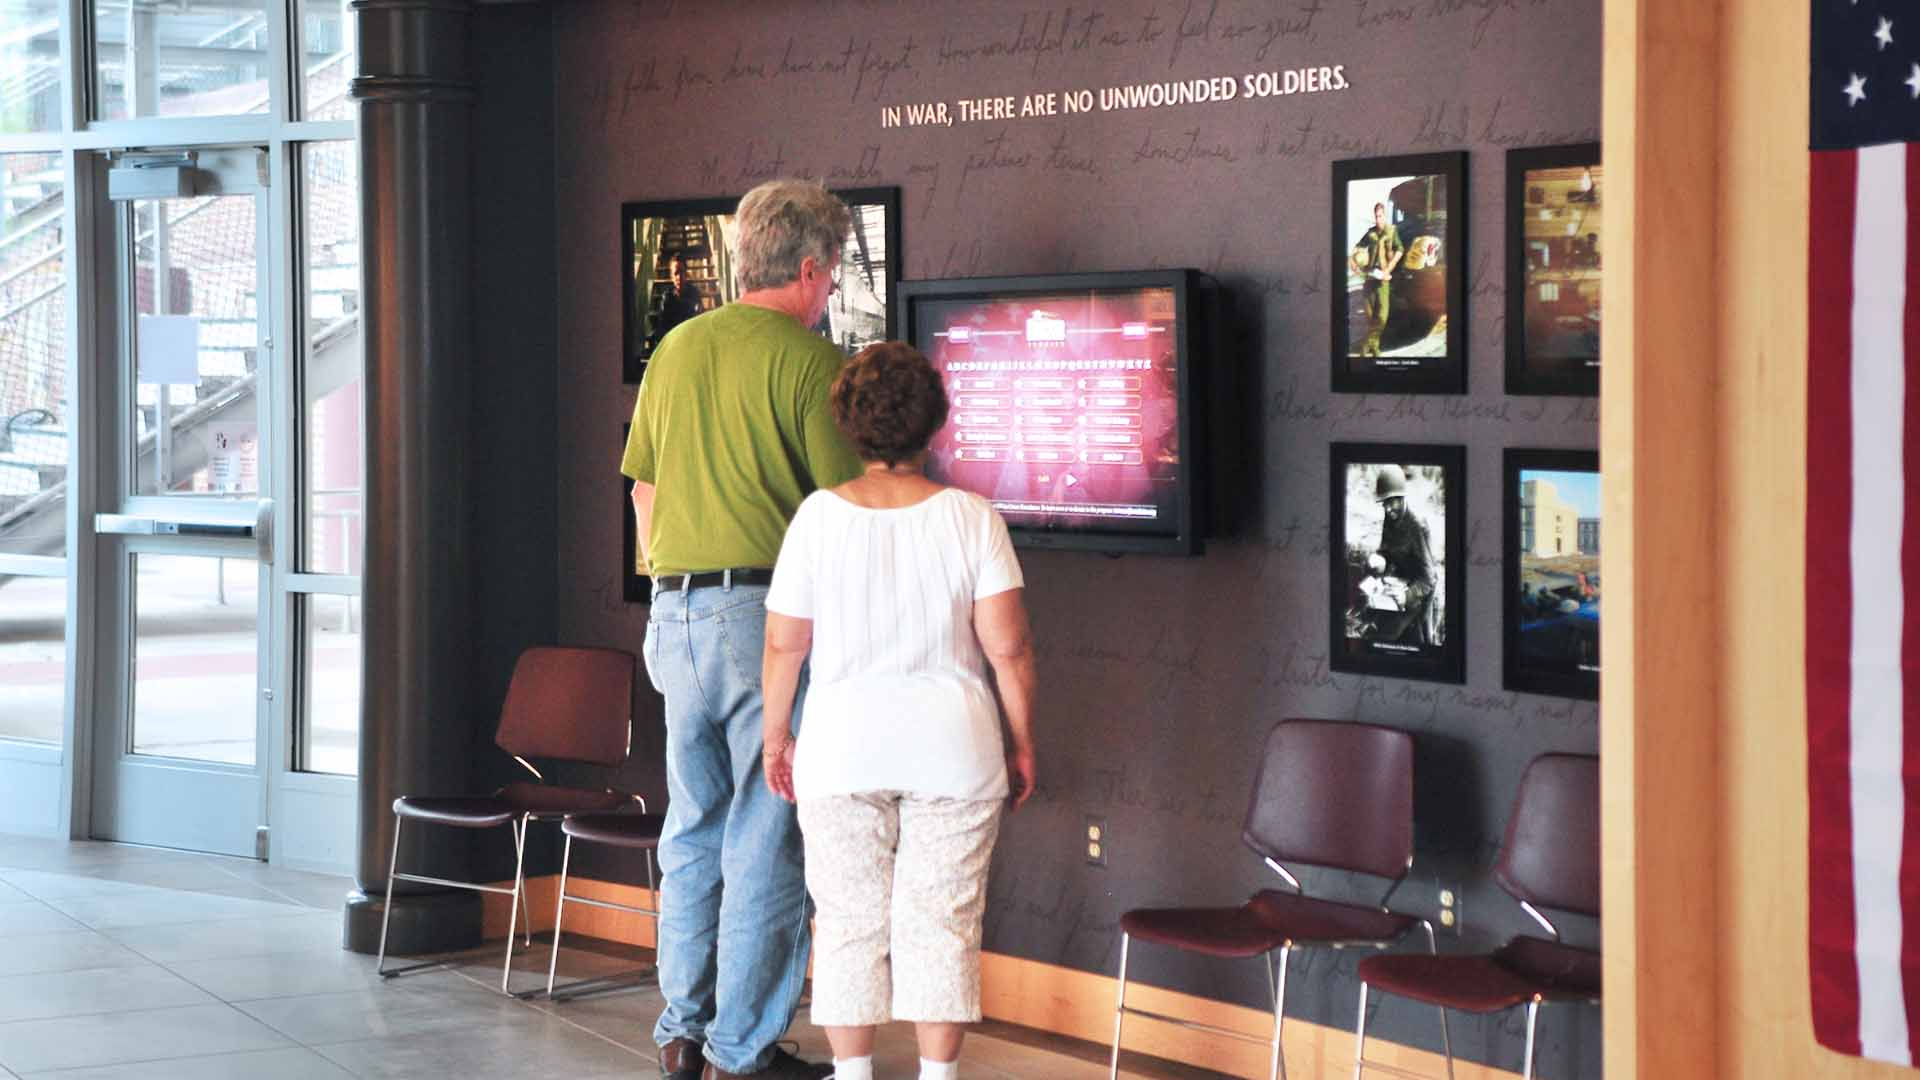 Couple viewing media exhibit about fallen soldiers